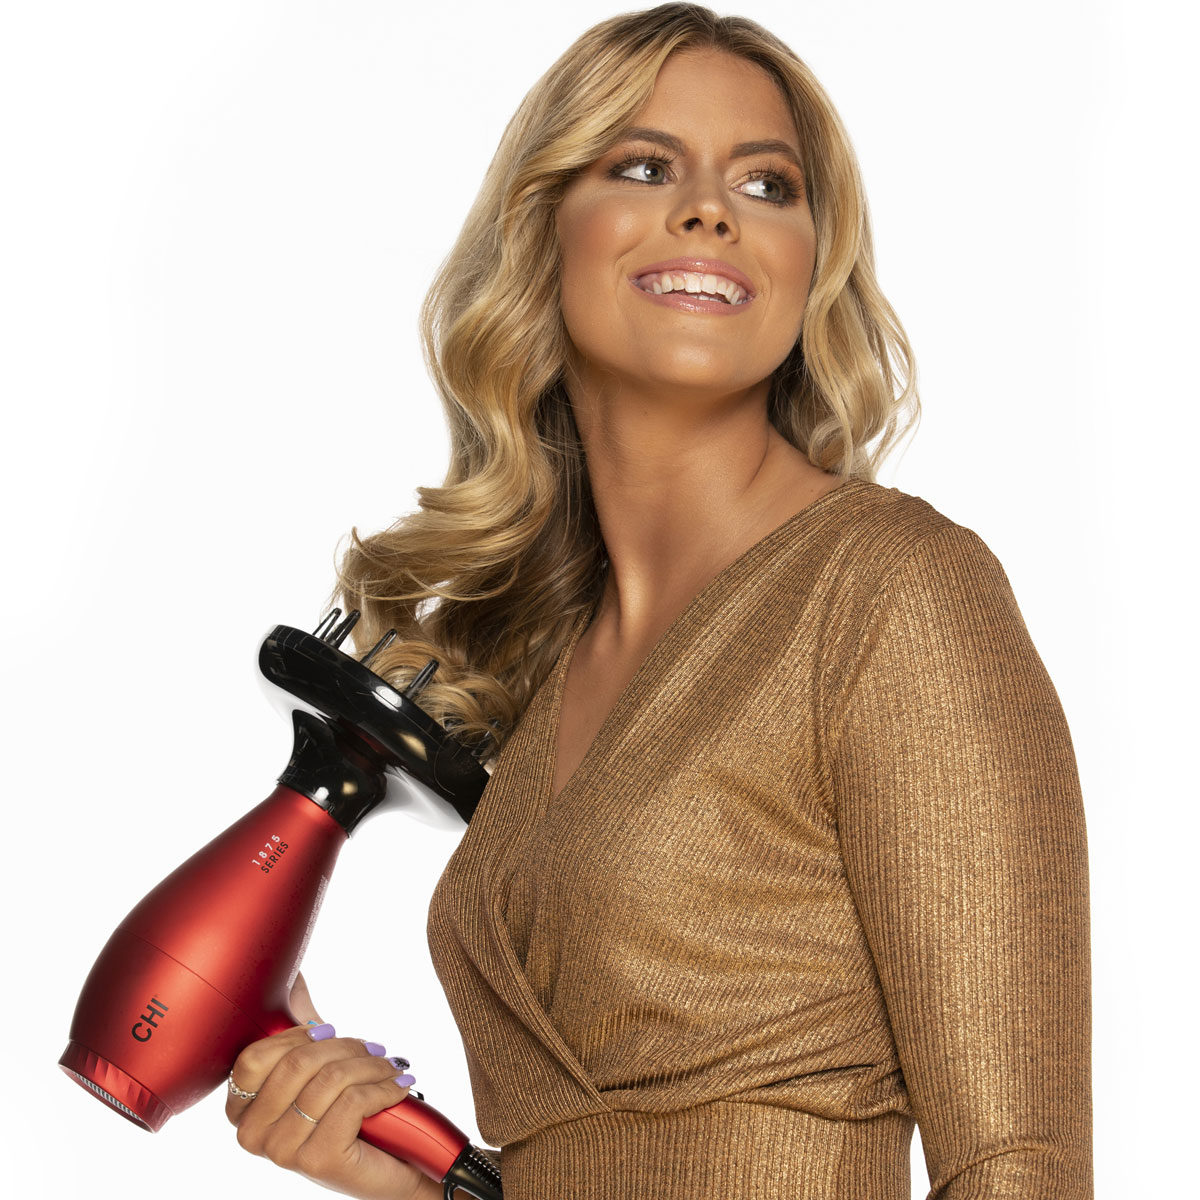 CHI 1875 Series Hair Dryer Blow Dryers